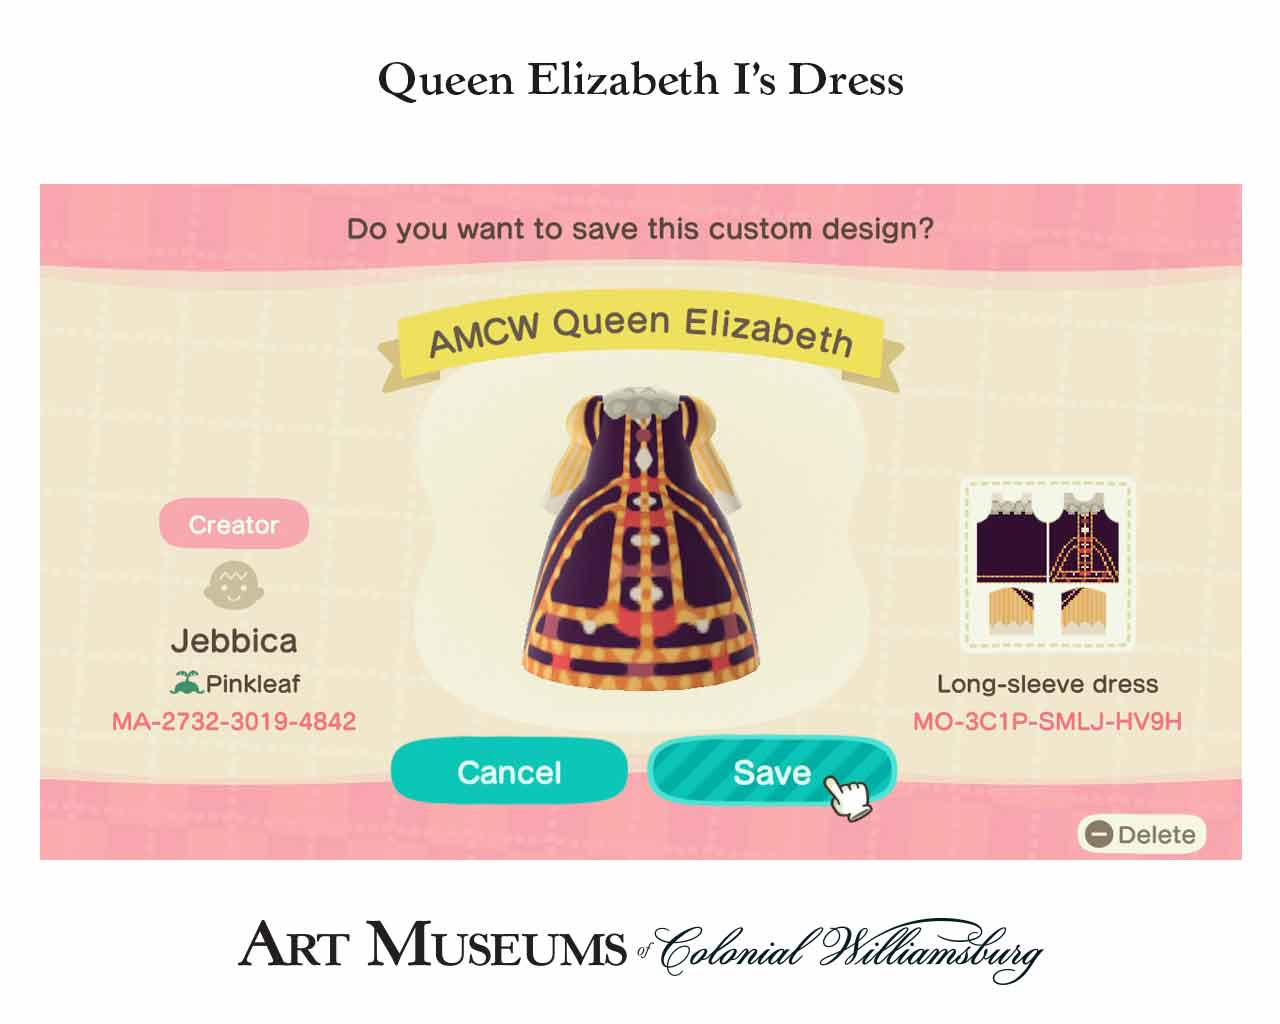 Bring A Little Art And History To Your Virtual World